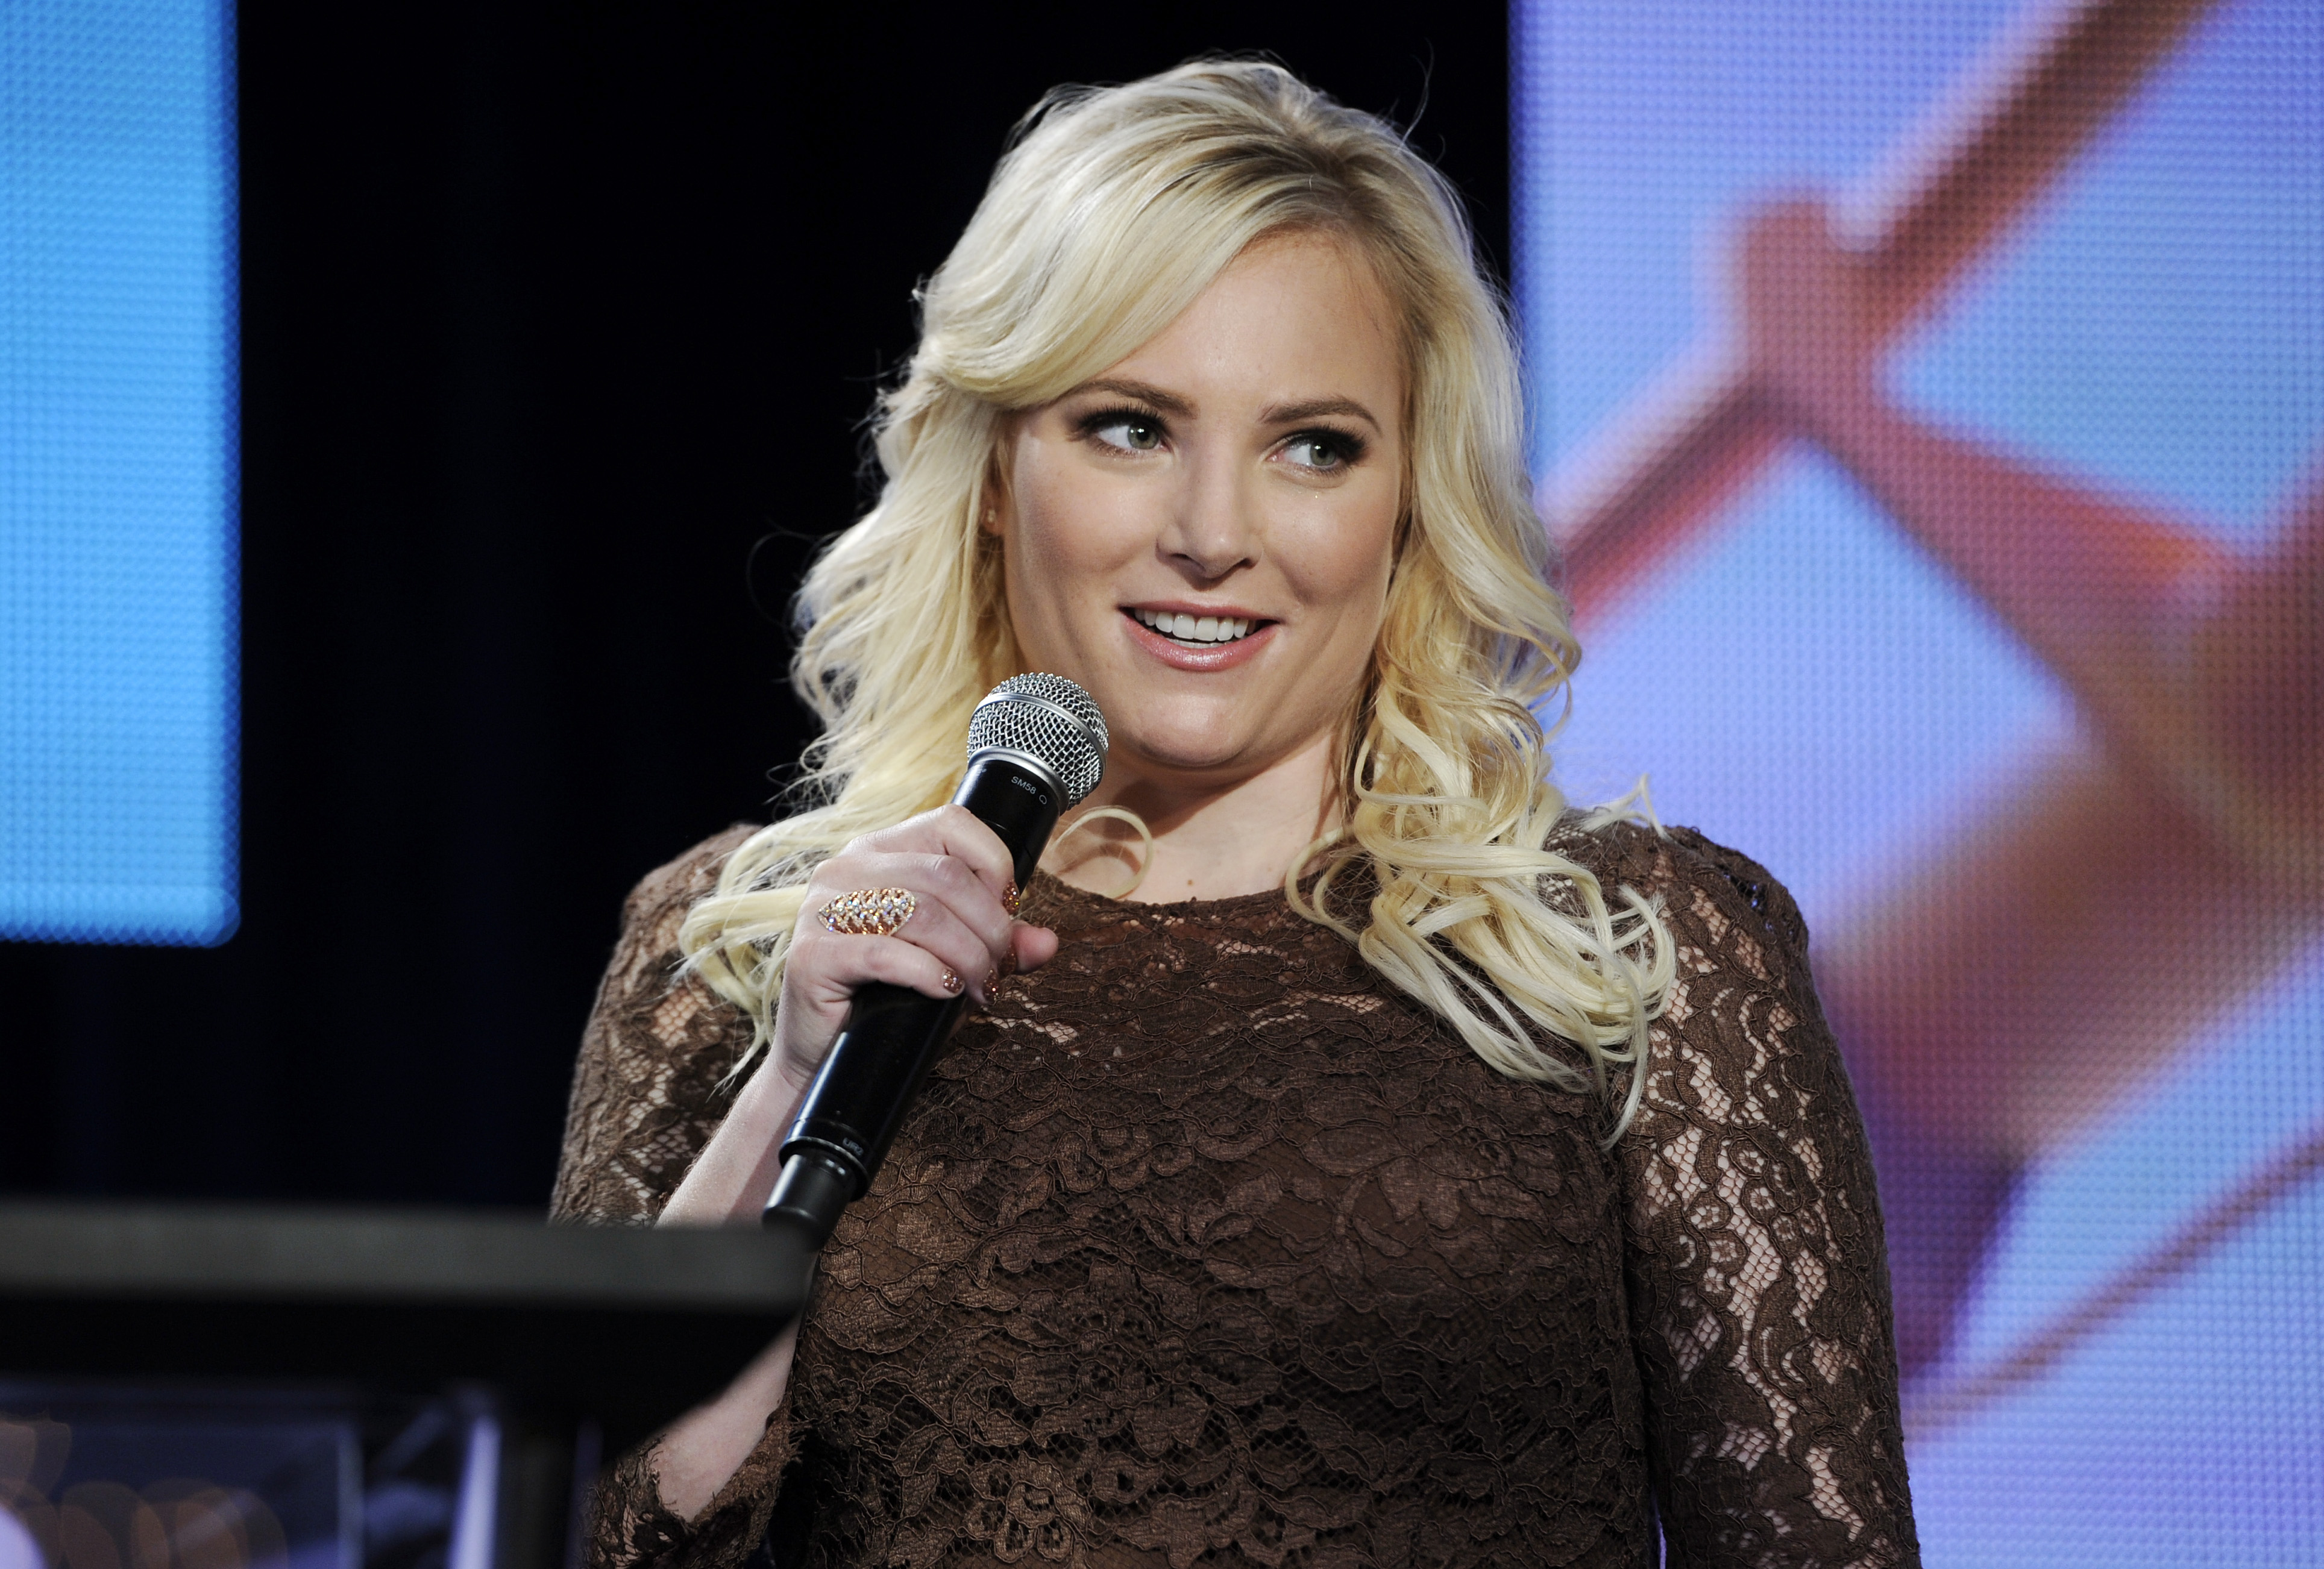 Meghan McCain Affirms Her Position on Gun Rights